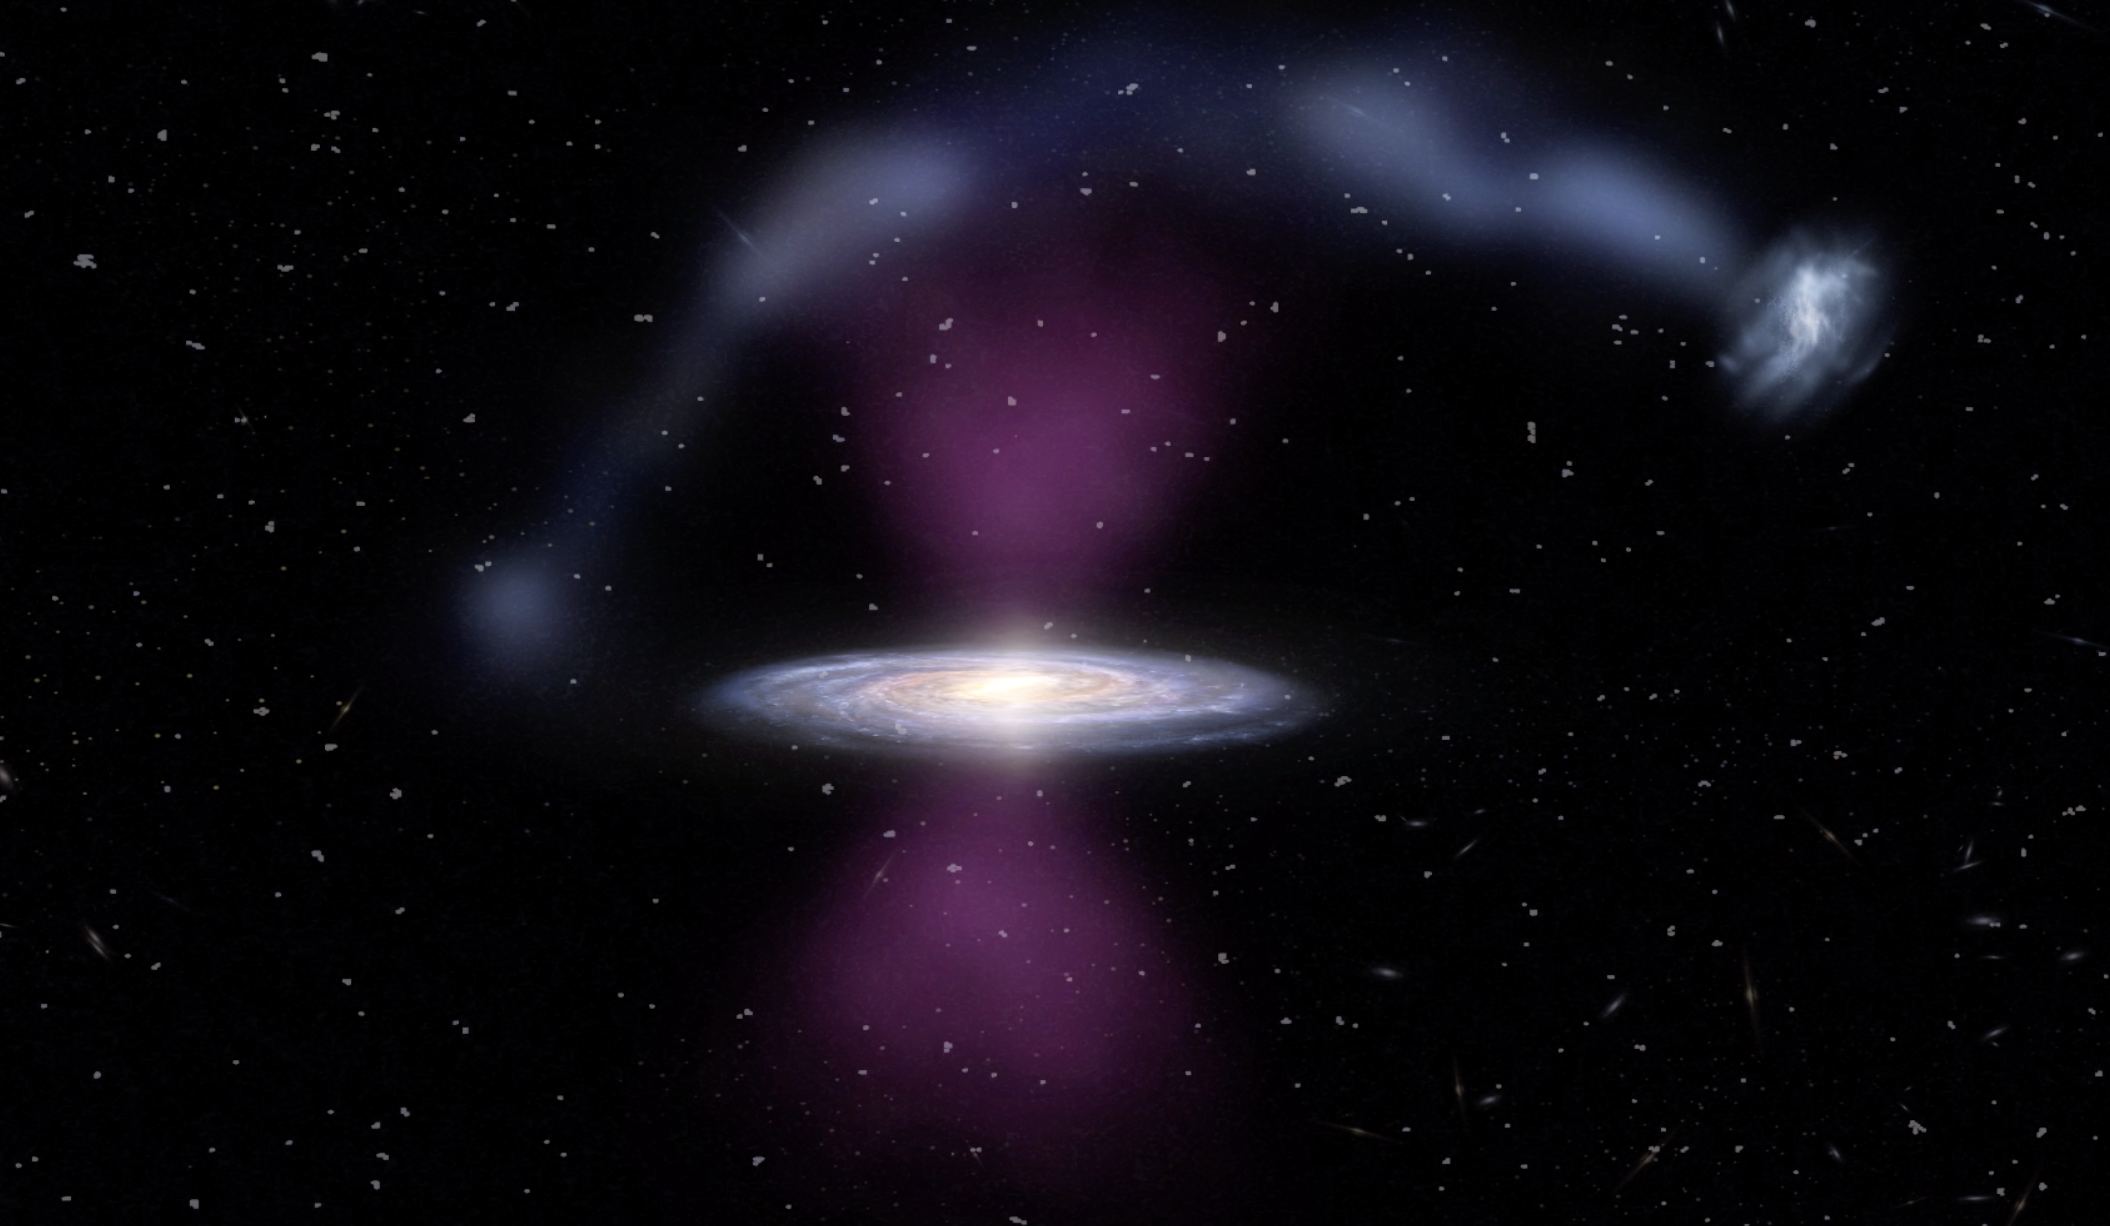 Edgewise galaxy with glowing purple blobs top and bottom, and a stream of material arcing over it.